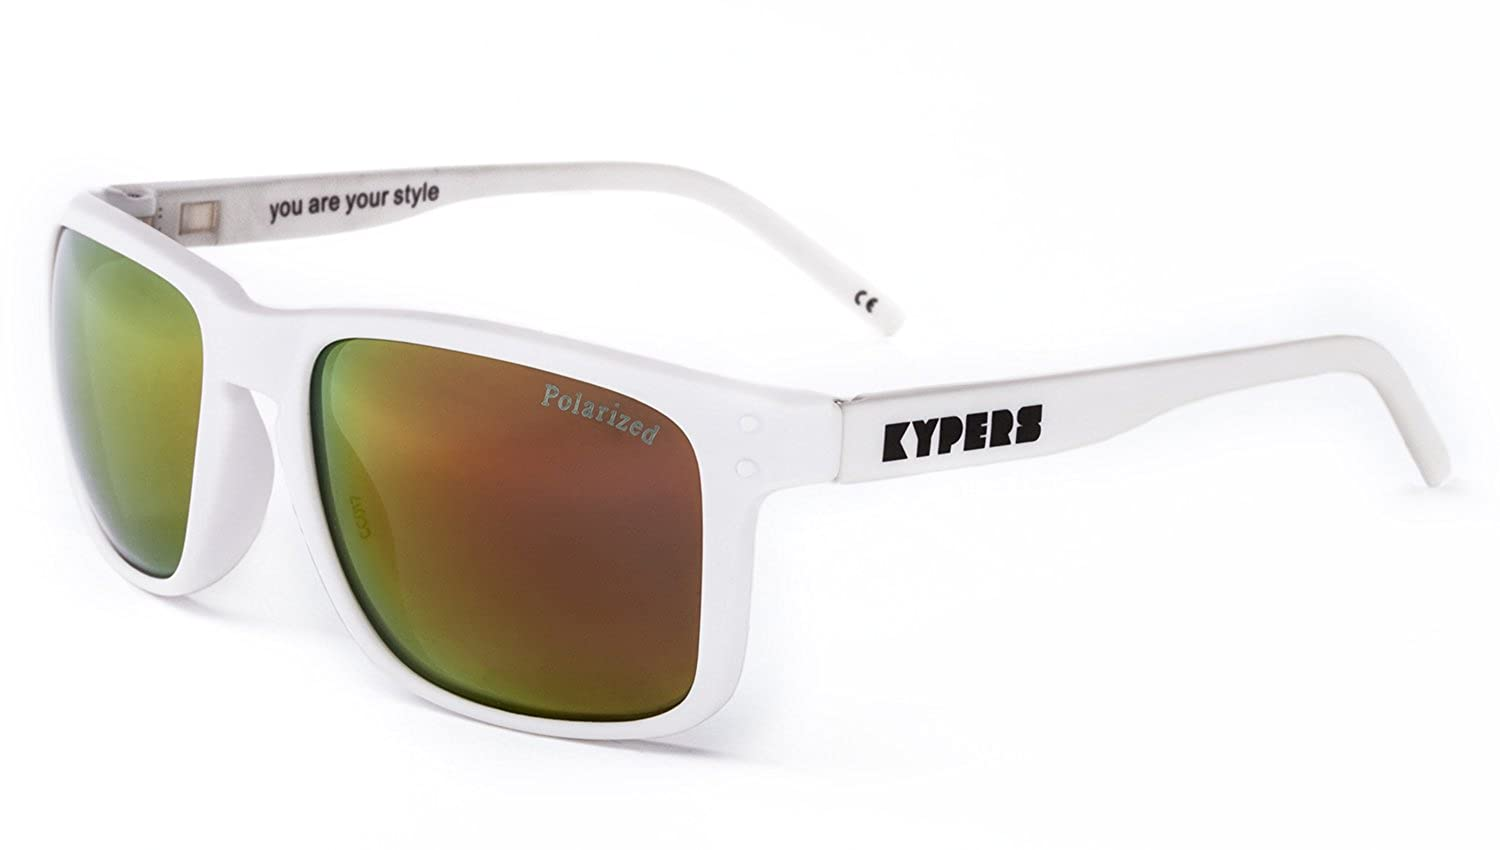 KYPERS Coconut, Gafas de Sol Unisex, Matte White-Red Mirror, 57: Amazon.es: Ropa y accesorios